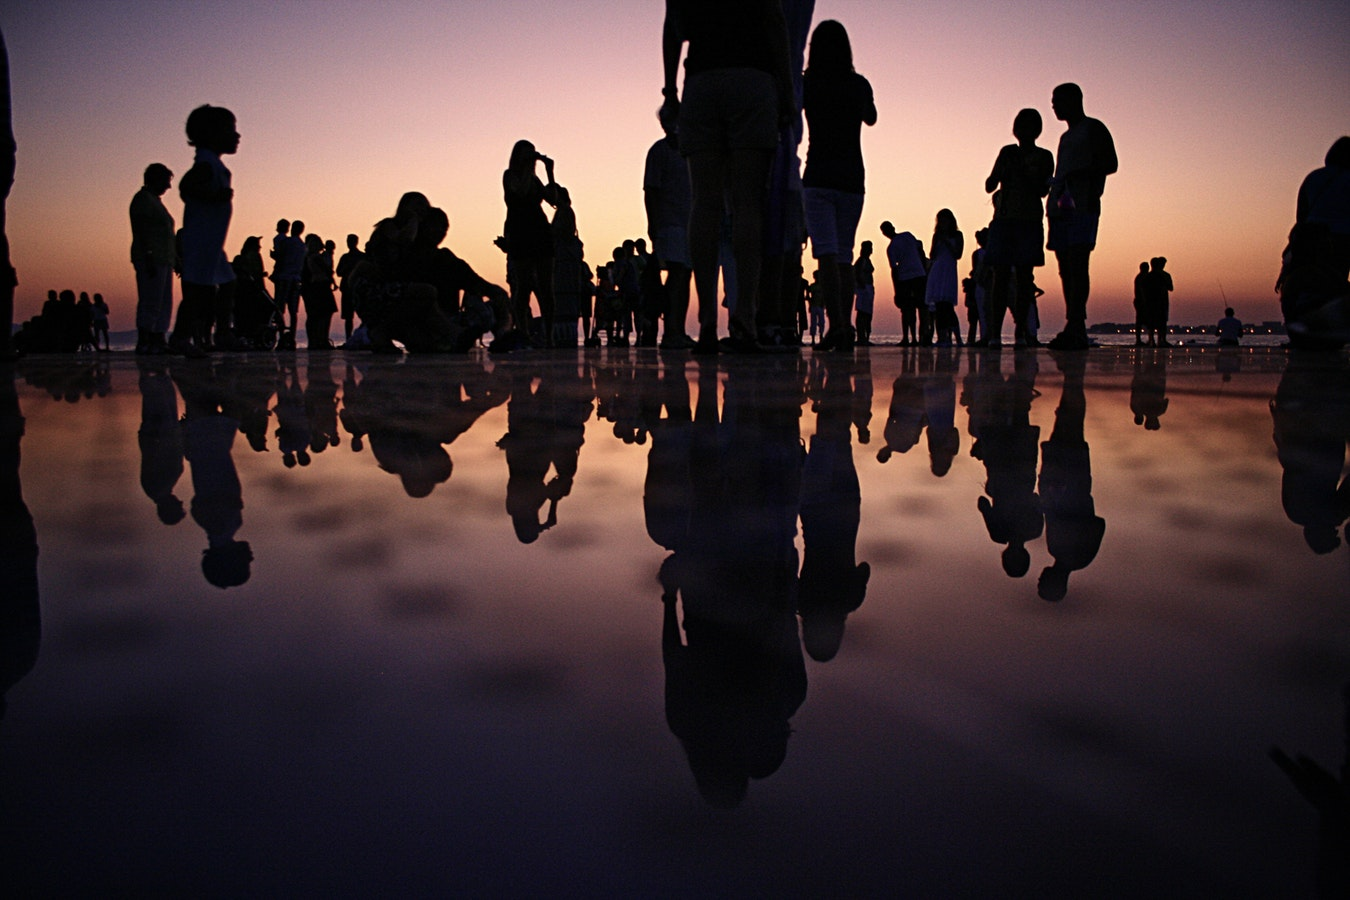 People standing on a mirror during golden hour. Everyone Isn't You